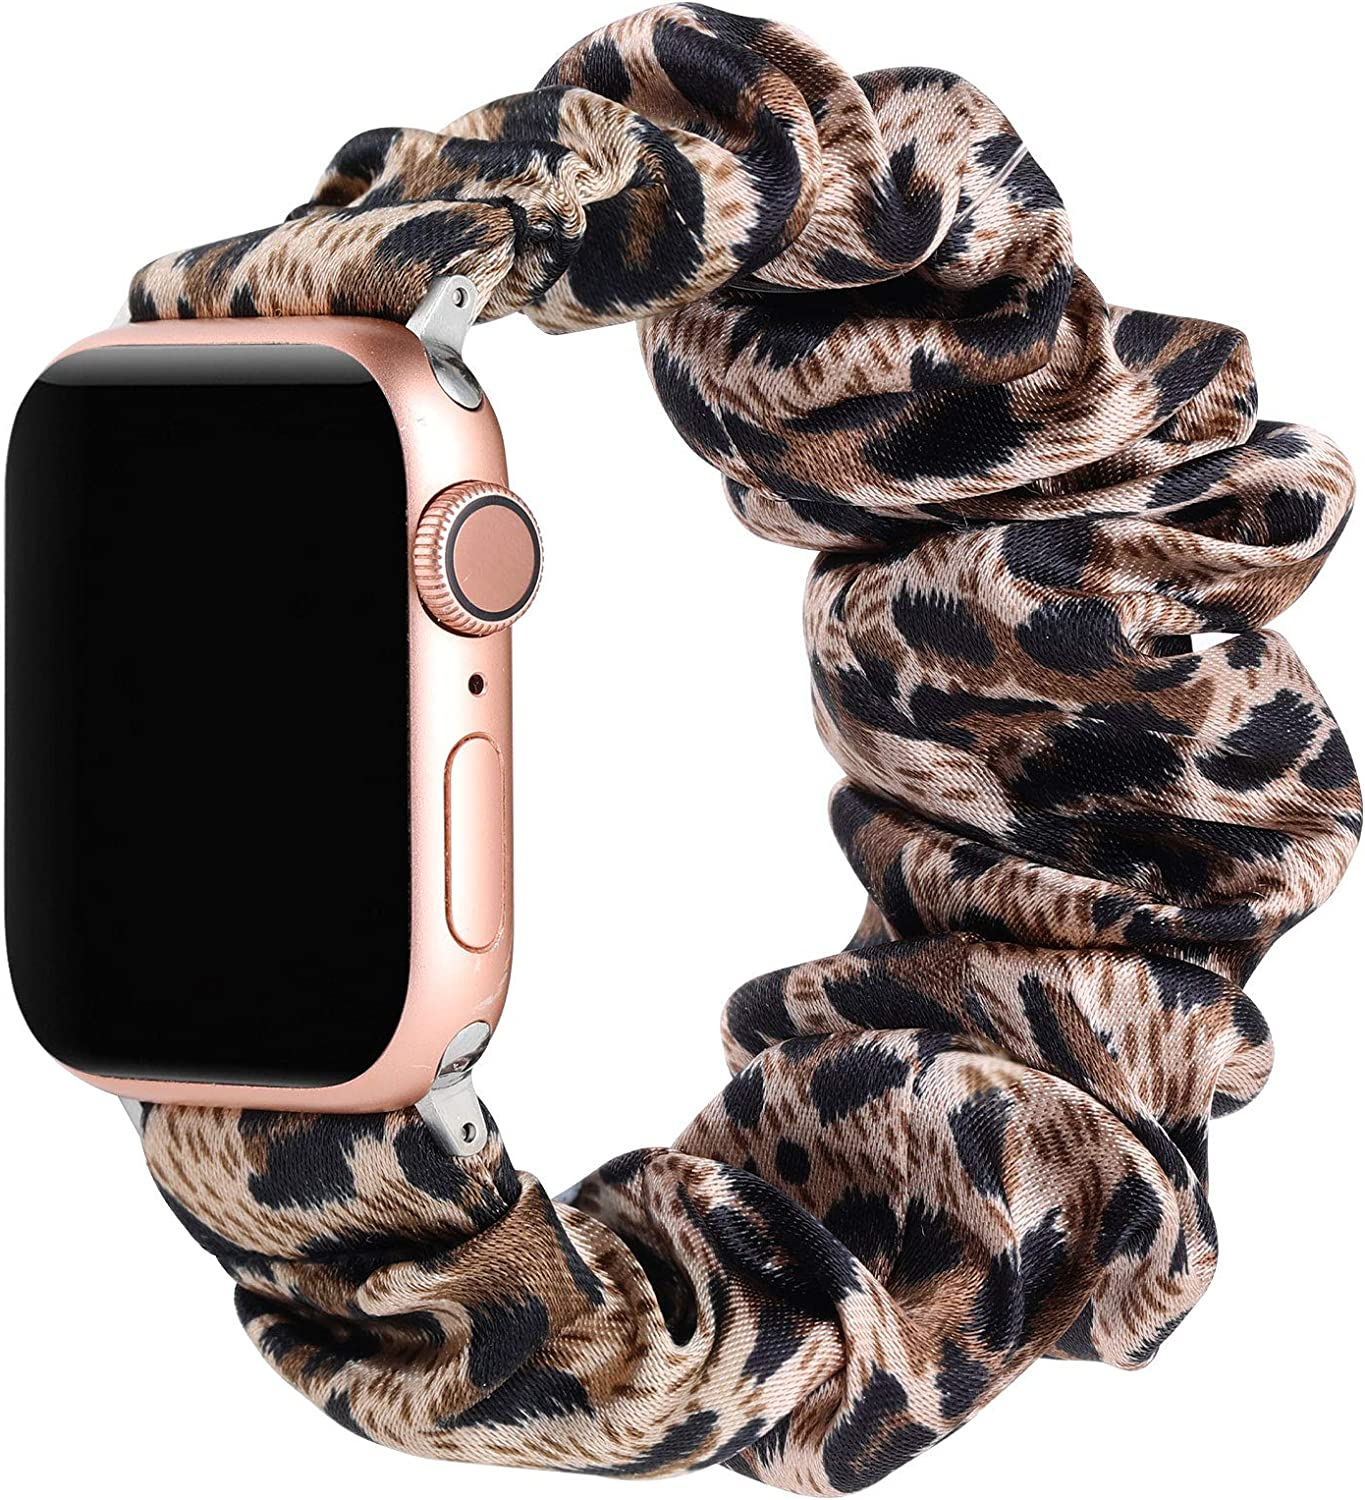 Suppeak Scrunchie Band Compatible with Apple Watch Series 5 4 3 2 1 38mm 40mm, Soft Pattern Printed Women Bracelet Strap, Fit for 5.5-6.7'' Wrist, Brown Leopard, 38mm/40mm, Small Size